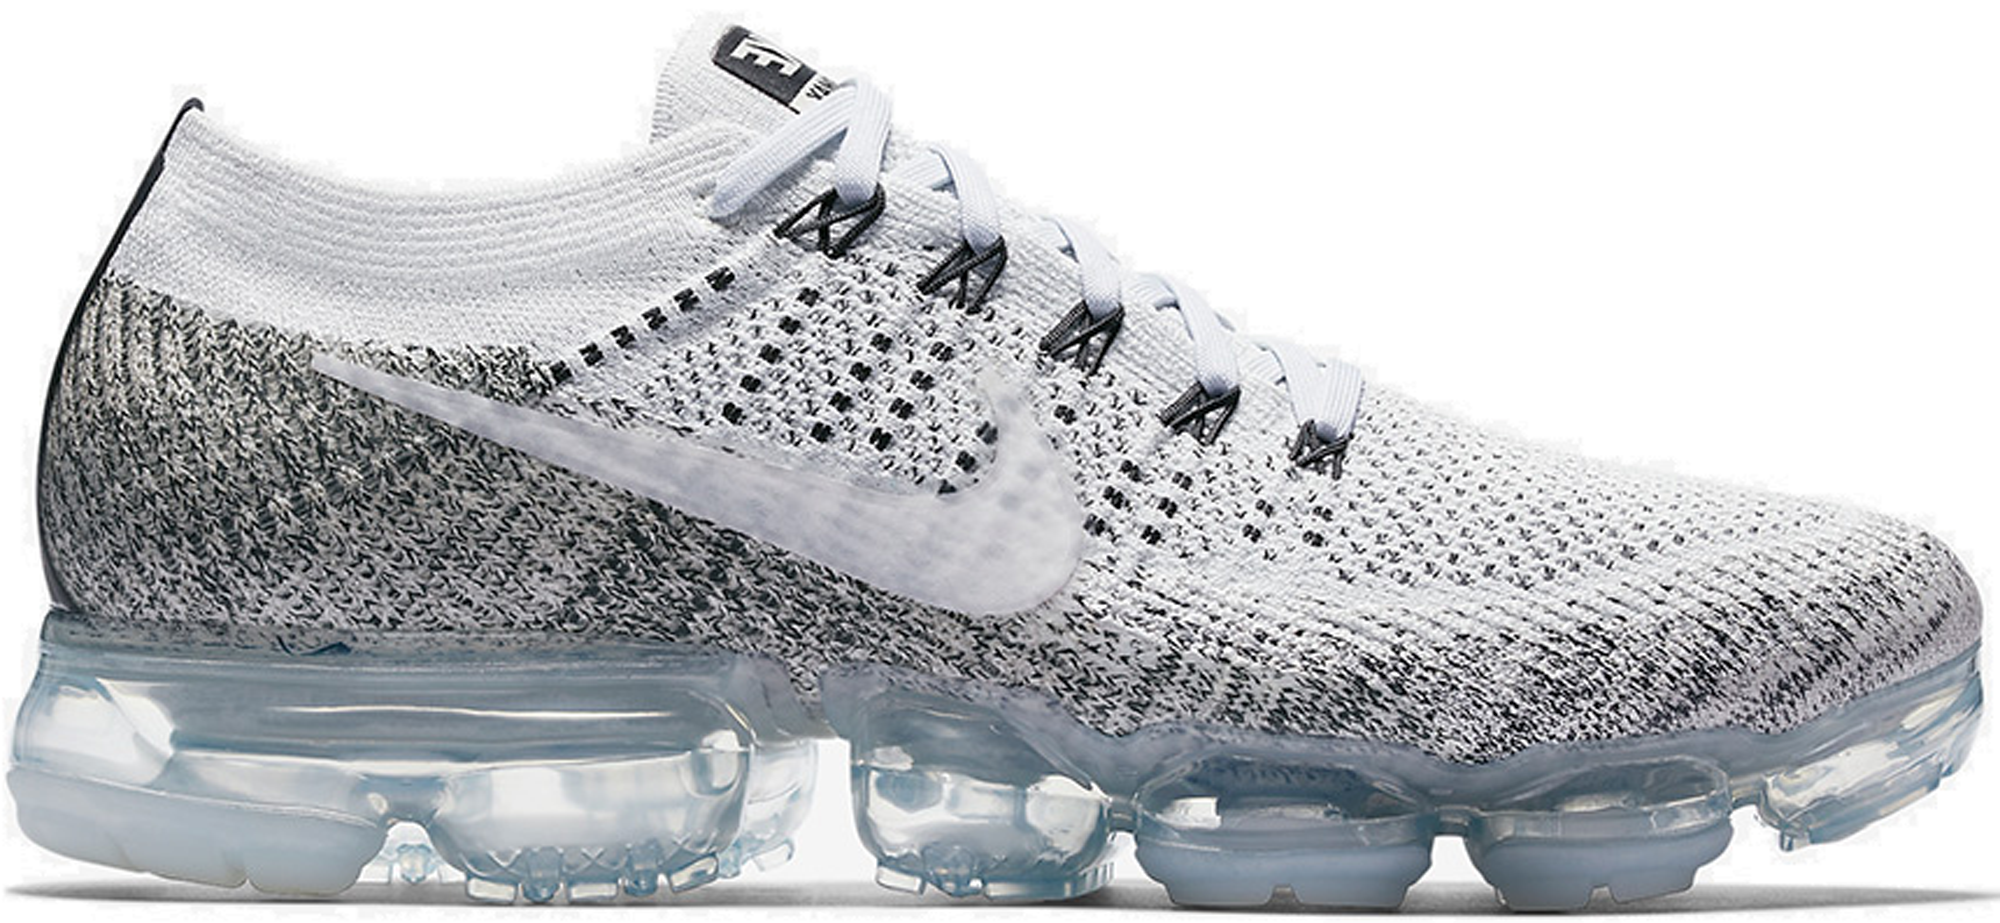 Nike to Release Air VaporMax Day to Night Collection